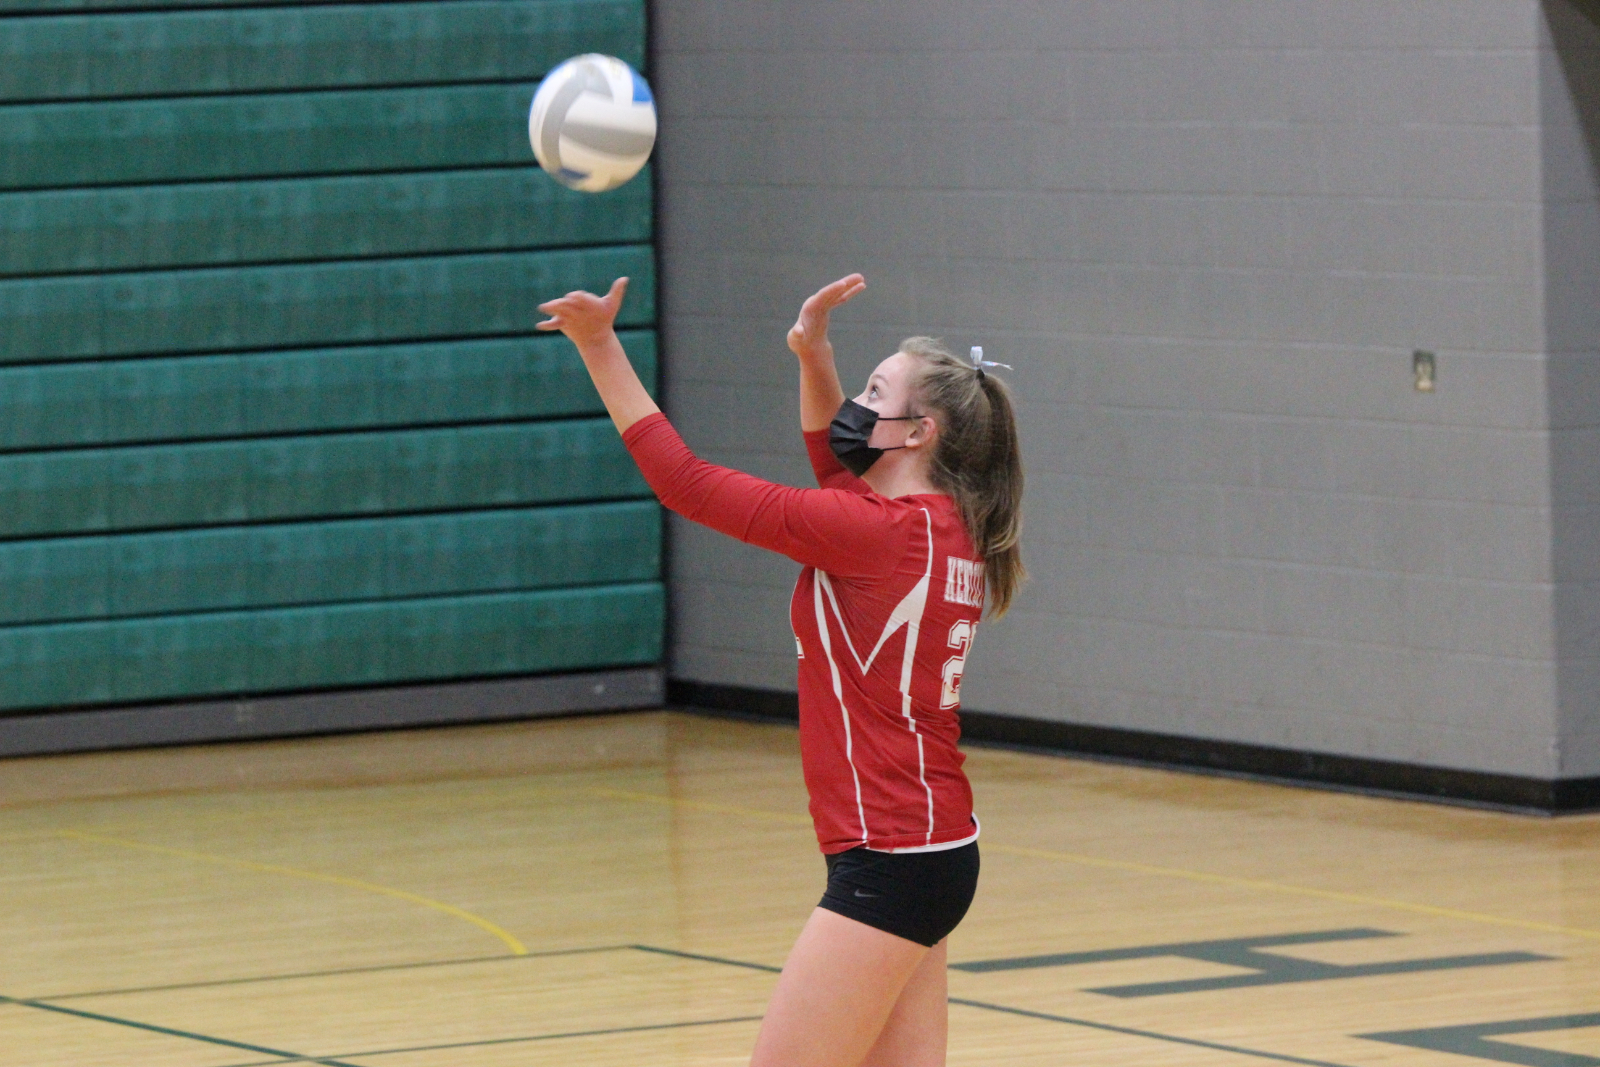 Eagle Volleyball Players Earn Well-Deserved Post-Season Recognition